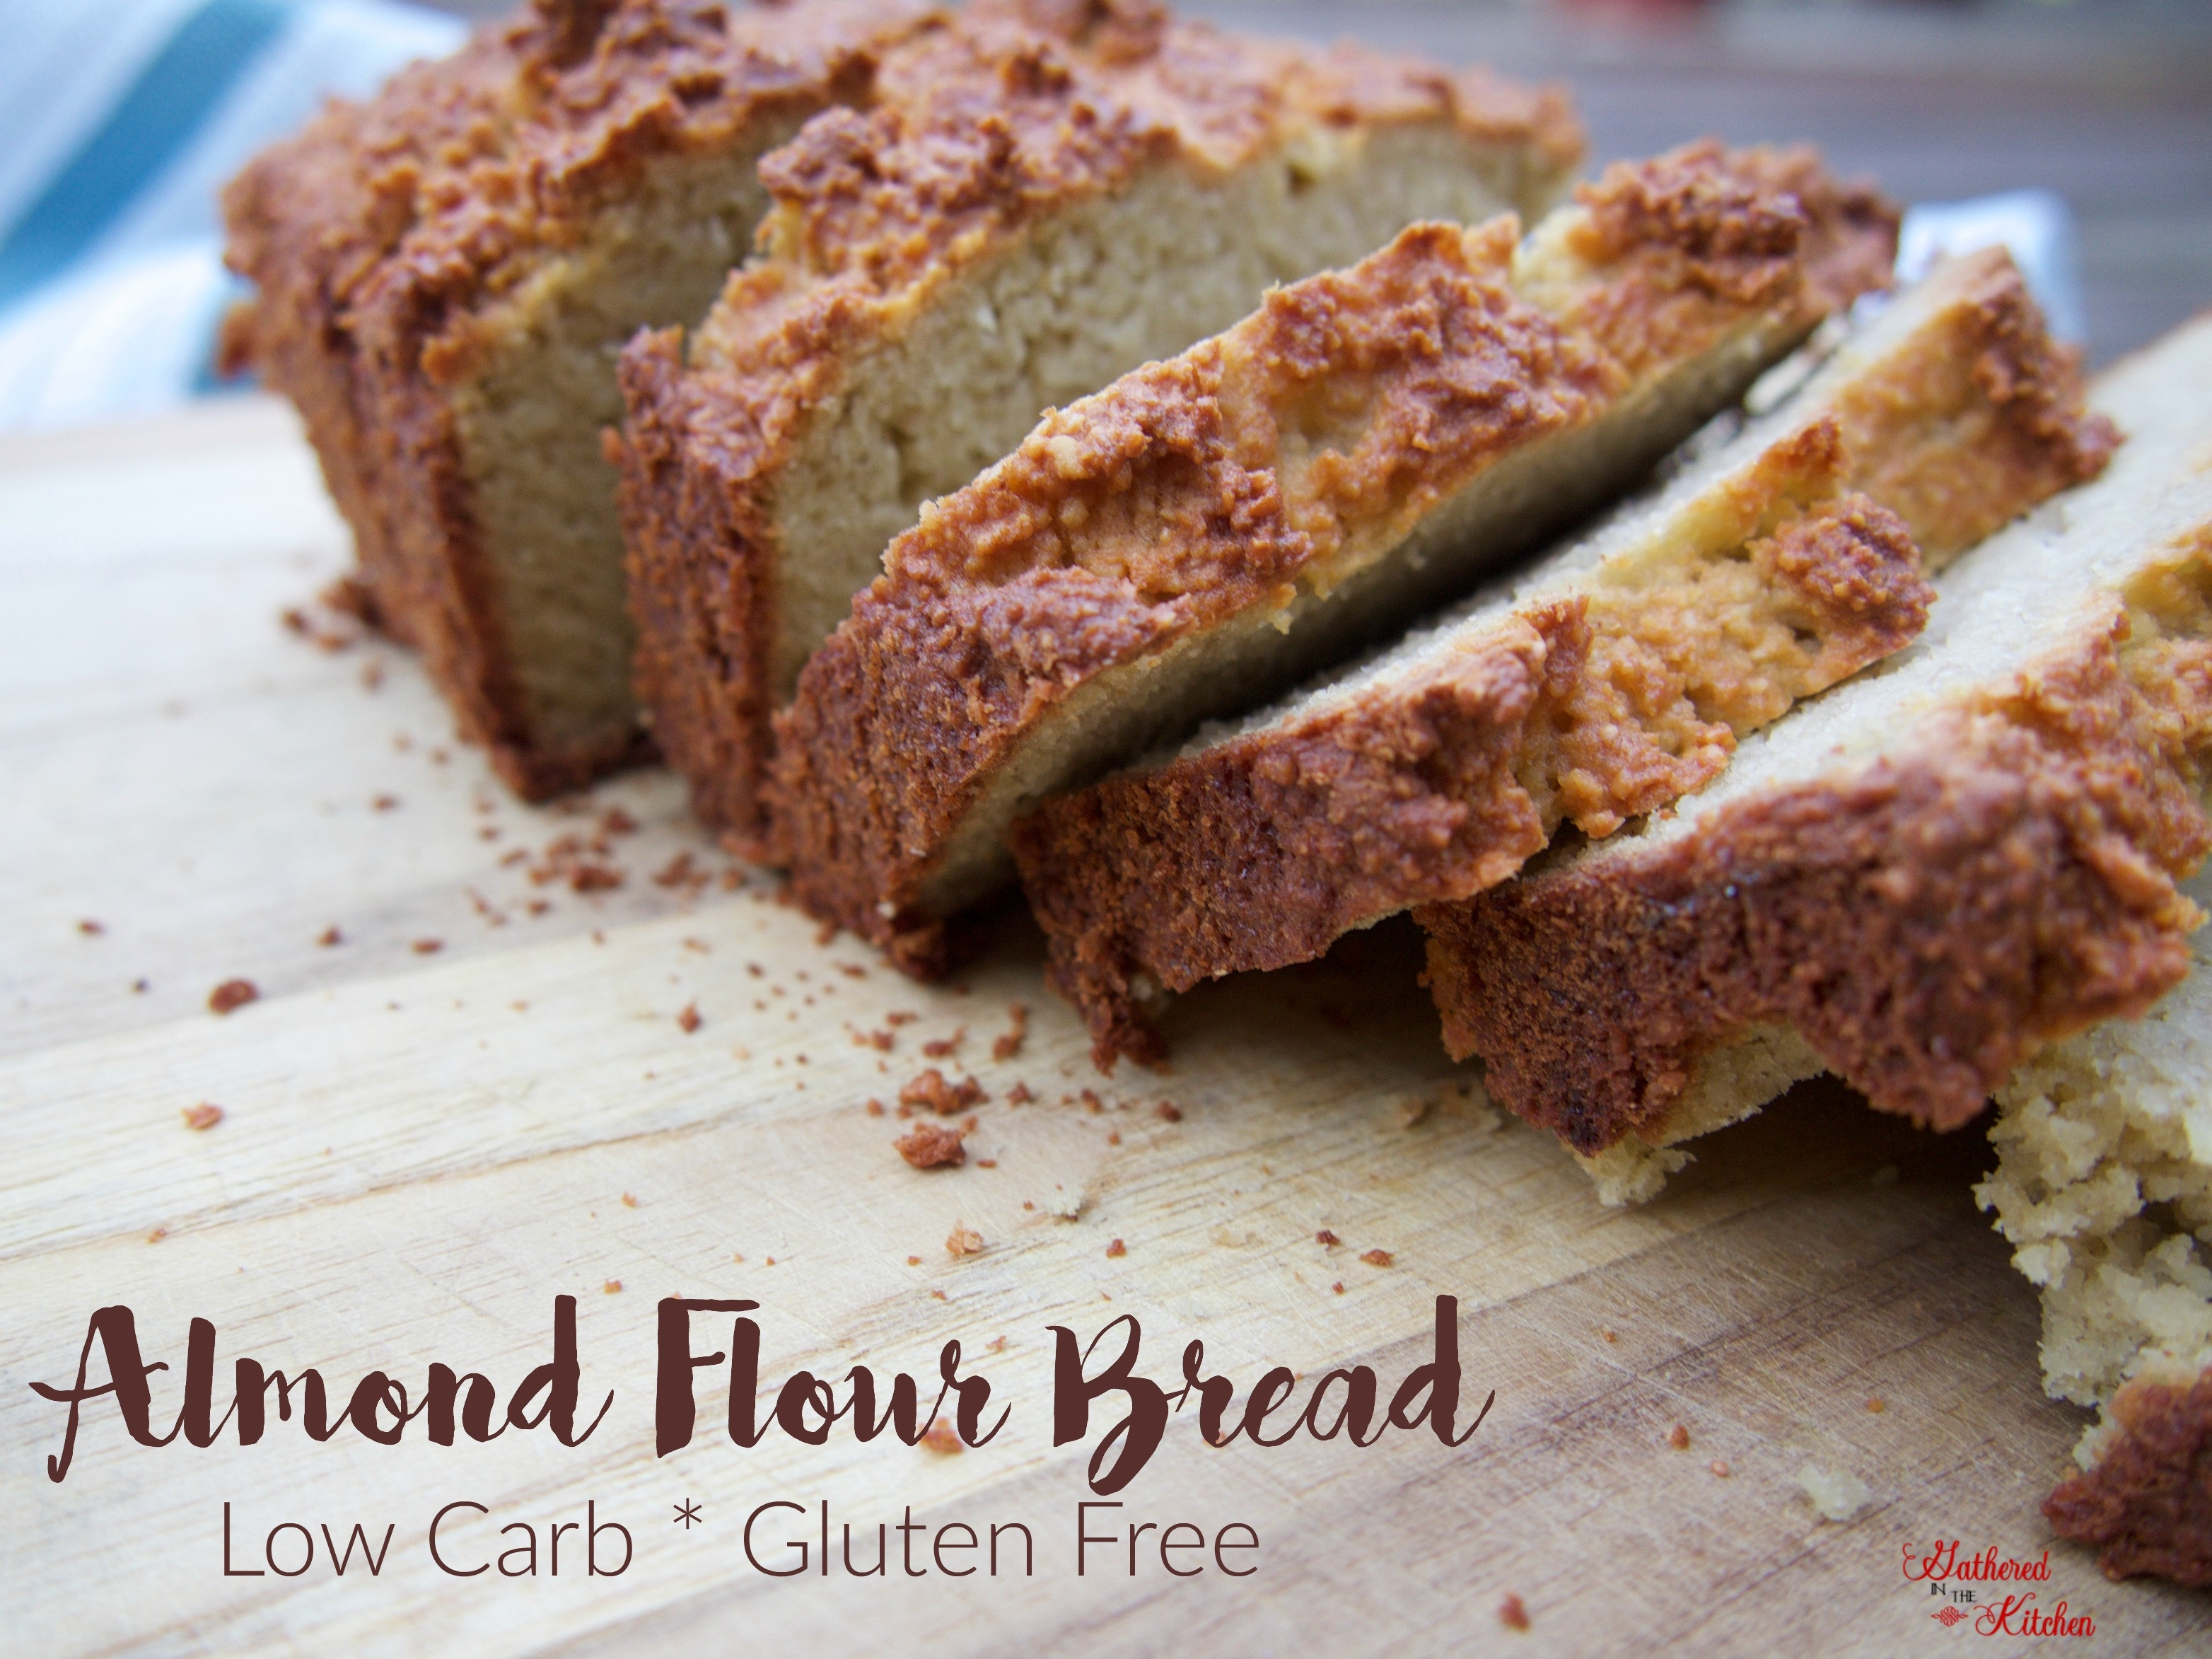 Gluten Free Low Carb Bread  Almond Flour Bread Low Carb & Gluten Free Gathered In